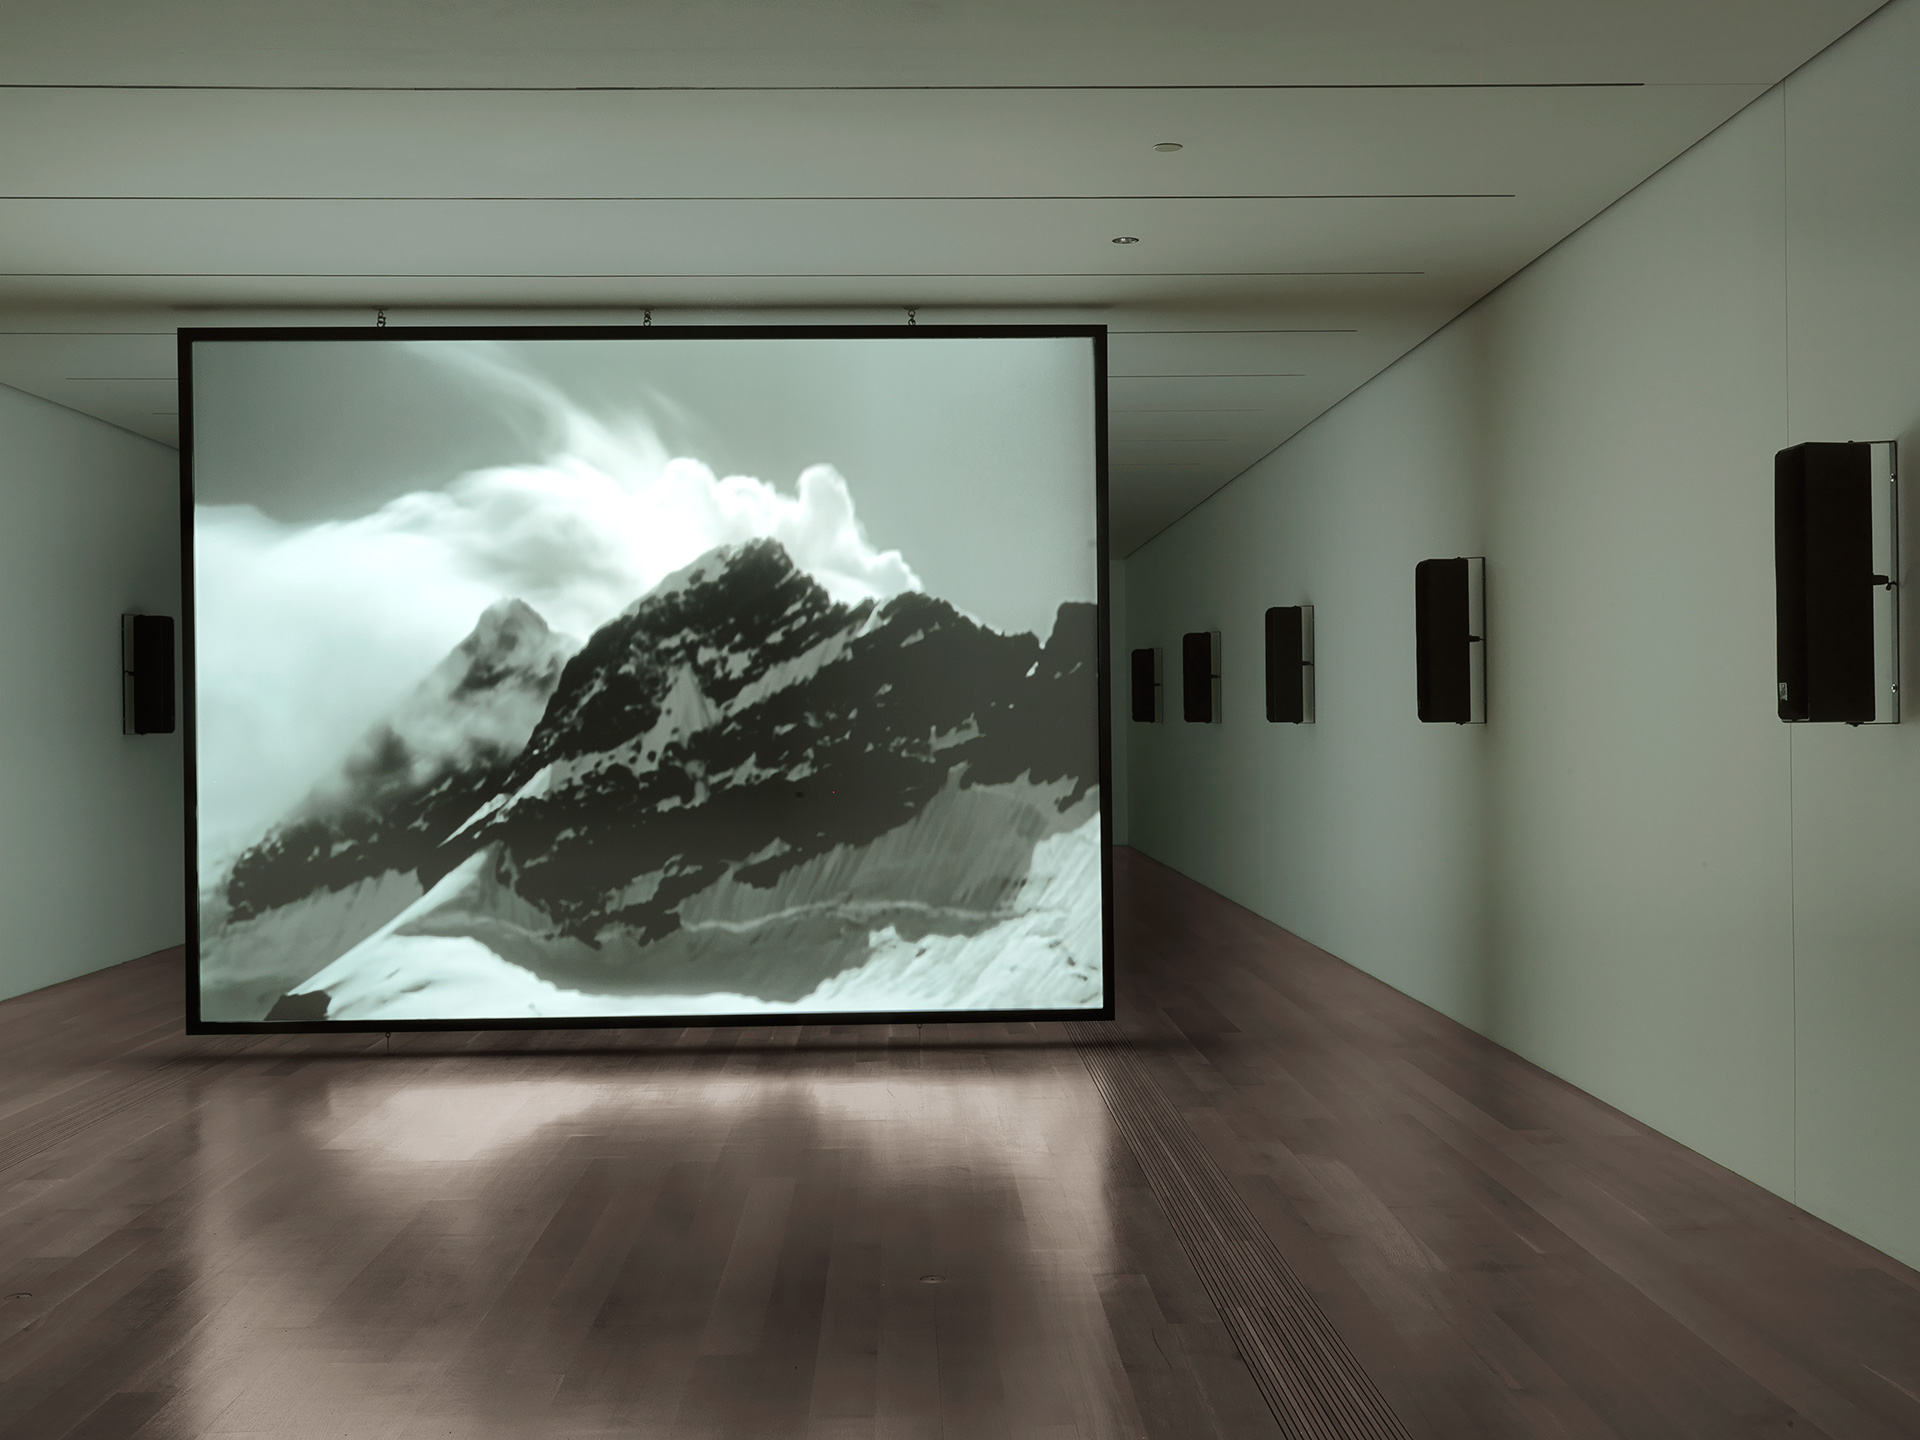 Susan Philipsz (b. 1965), White Flood, 2019, 12-channel sound installation, HD film, 14 min. 11 seconds, dimensions variable, installation view 1 | Susan Philipsz: Seven Tears | Susan Philipsz | STIRworld